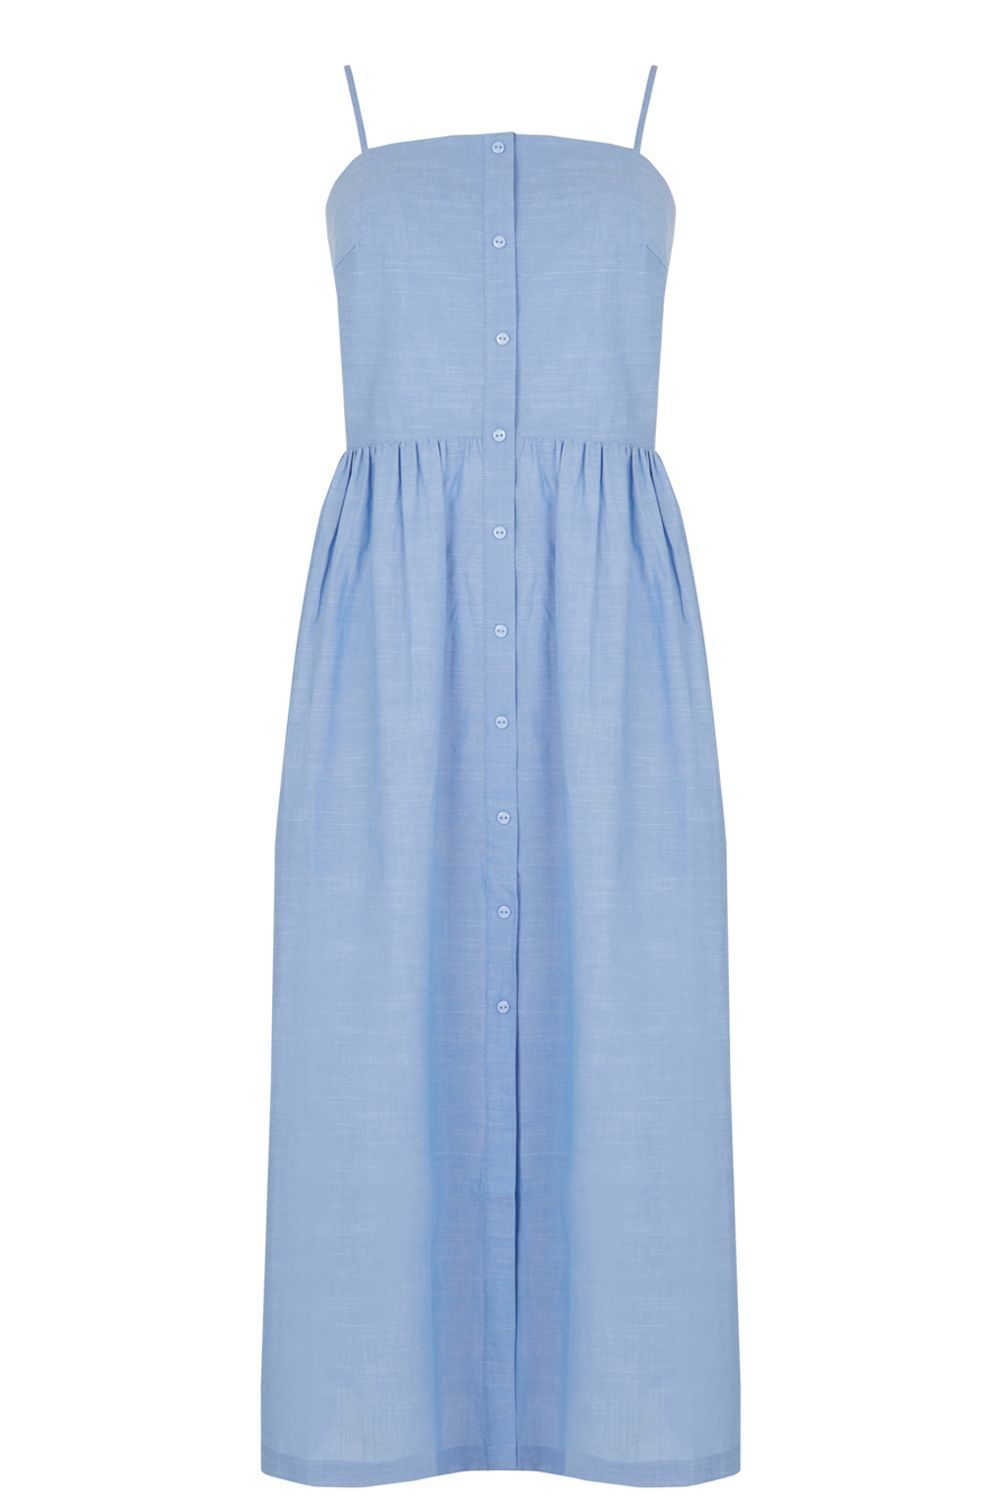 Cotton Cami Midi Dress, Light Blue - length: calf length; sleeve style: spaghetti straps; pattern: plain; style: sundress; predominant colour: pale blue; occasions: casual, holiday; fit: fitted at waist & bust; fibres: cotton - 100%; sleeve length: sleeveless; texture group: cotton feel fabrics; neckline: low square neck; pattern type: fabric; season: s/s 2016; wardrobe: highlight